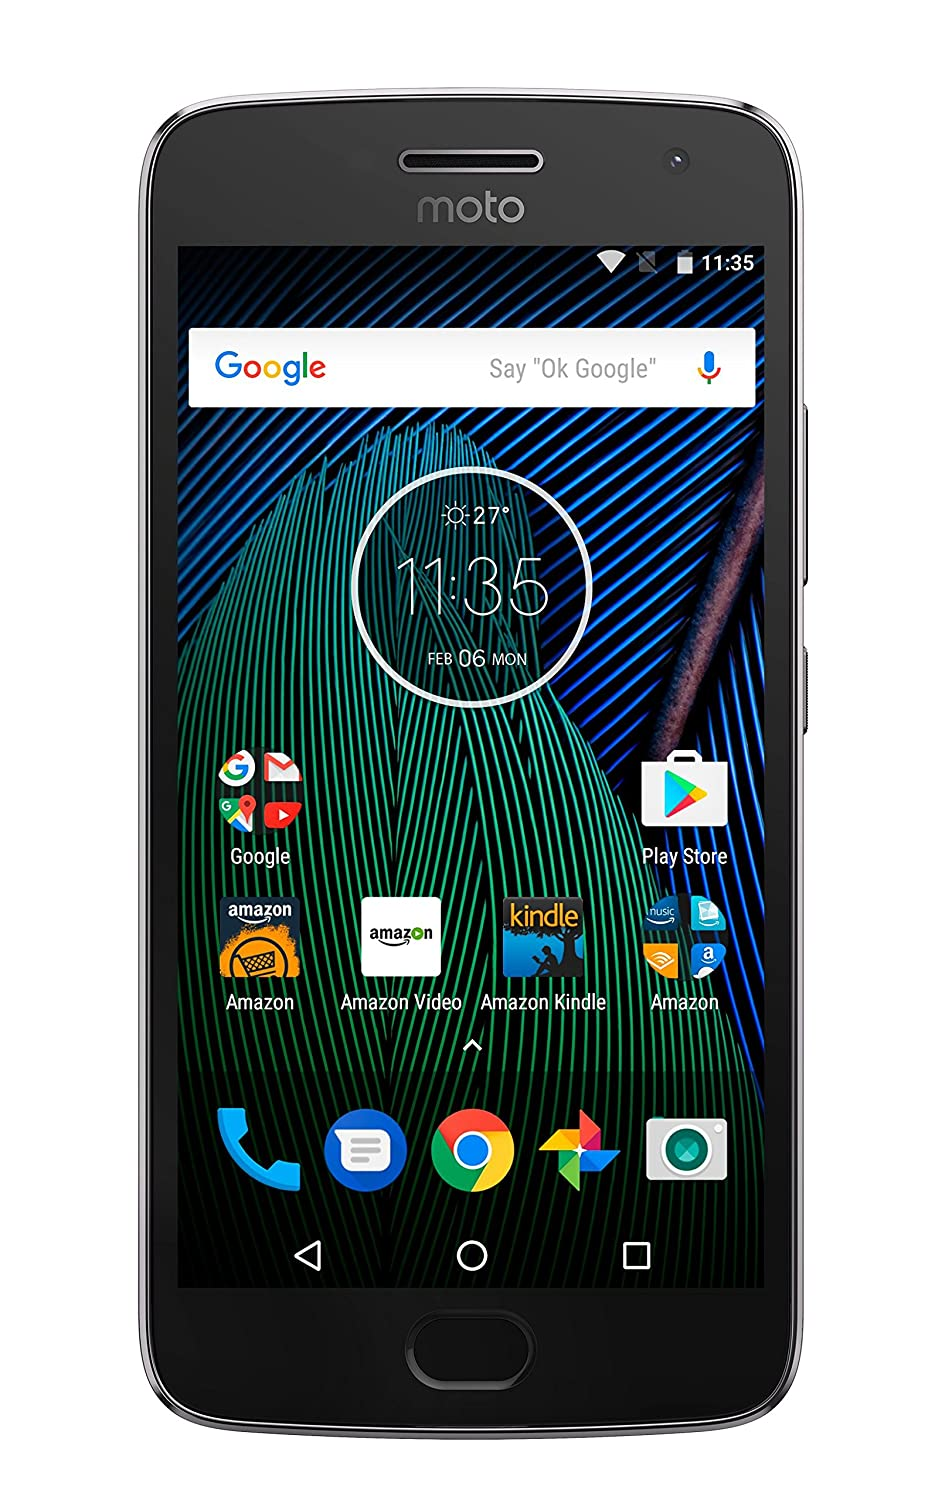 Amazon prime membership phone number - Amazon Com Moto G Plus 5th Generation Lunar Gray 32 Gb Unlocked Prime Exclusive With Lockscreen Offers Ads Cell Phones Accessories